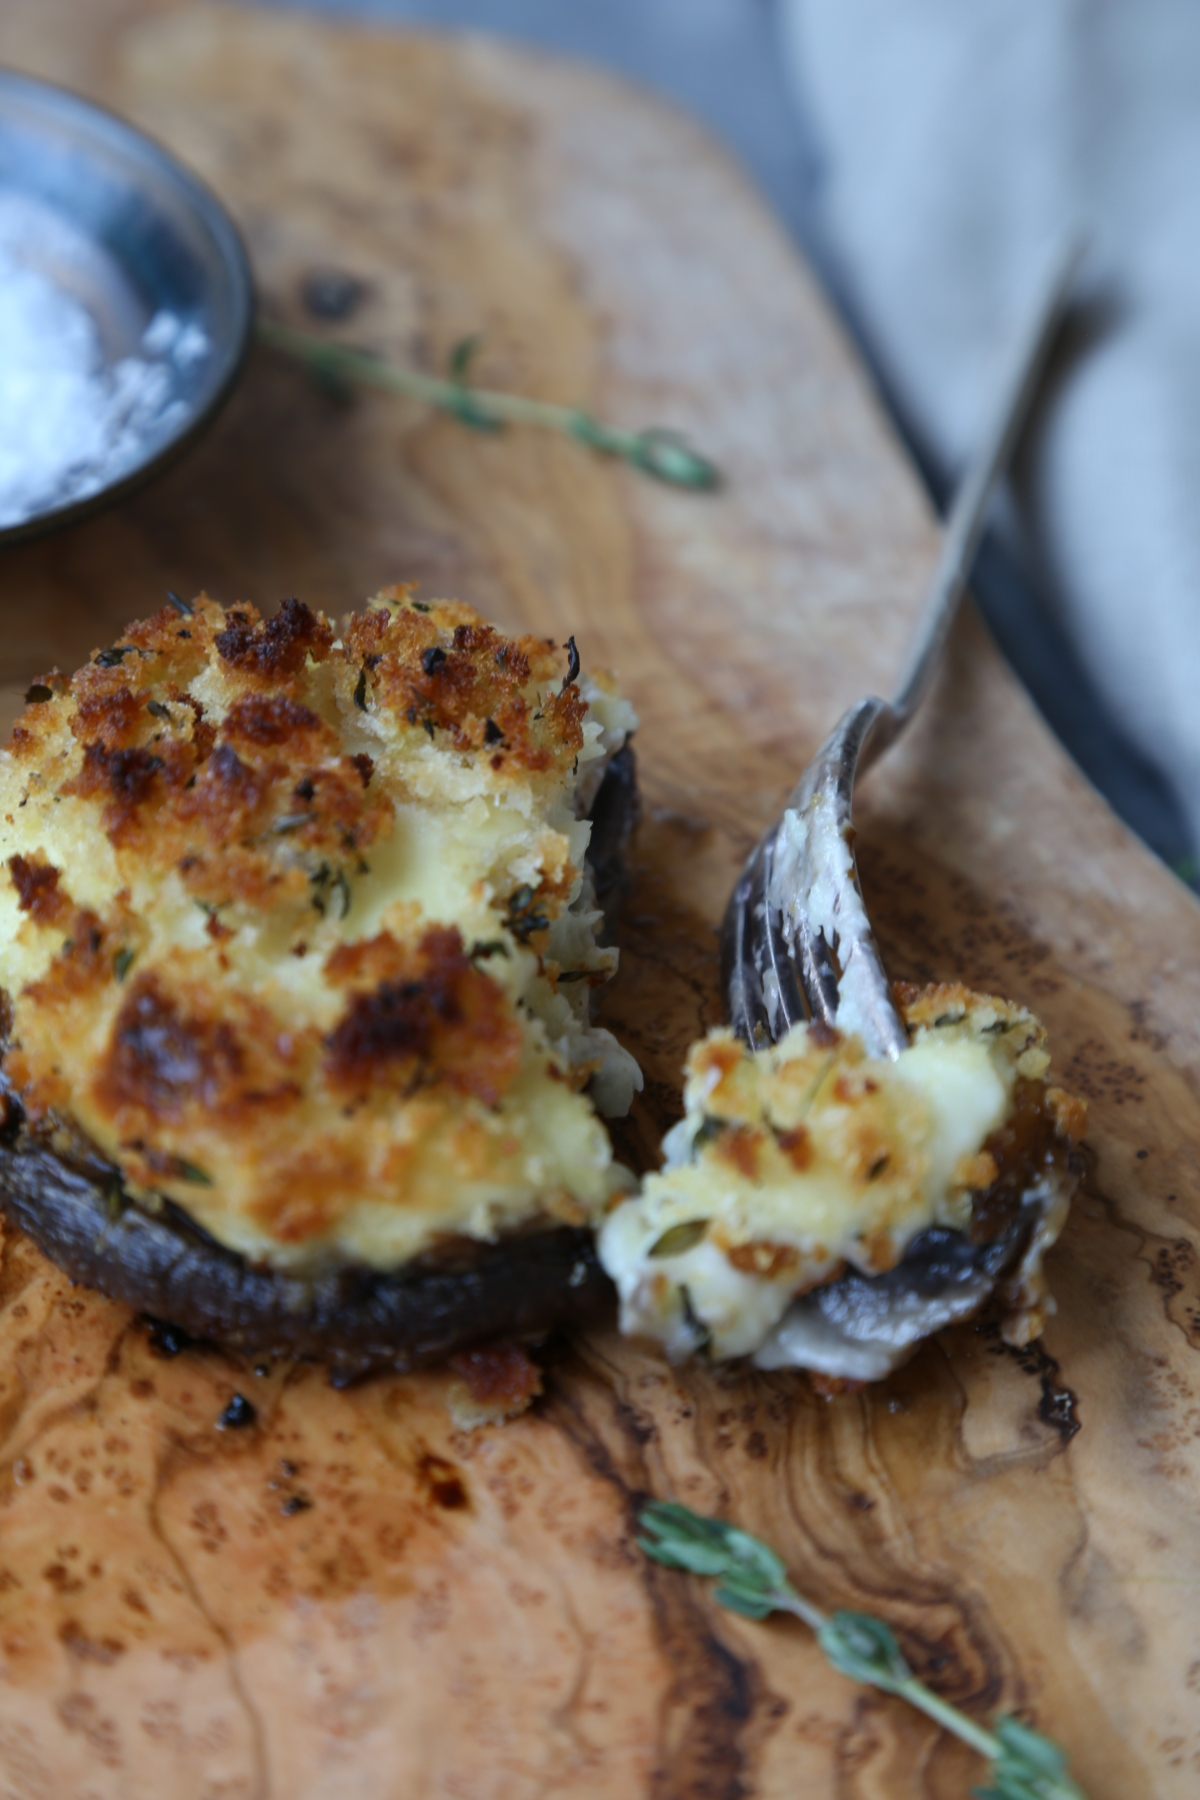 Stuffed mushroom with parsnip puree and garlic bread crumbs